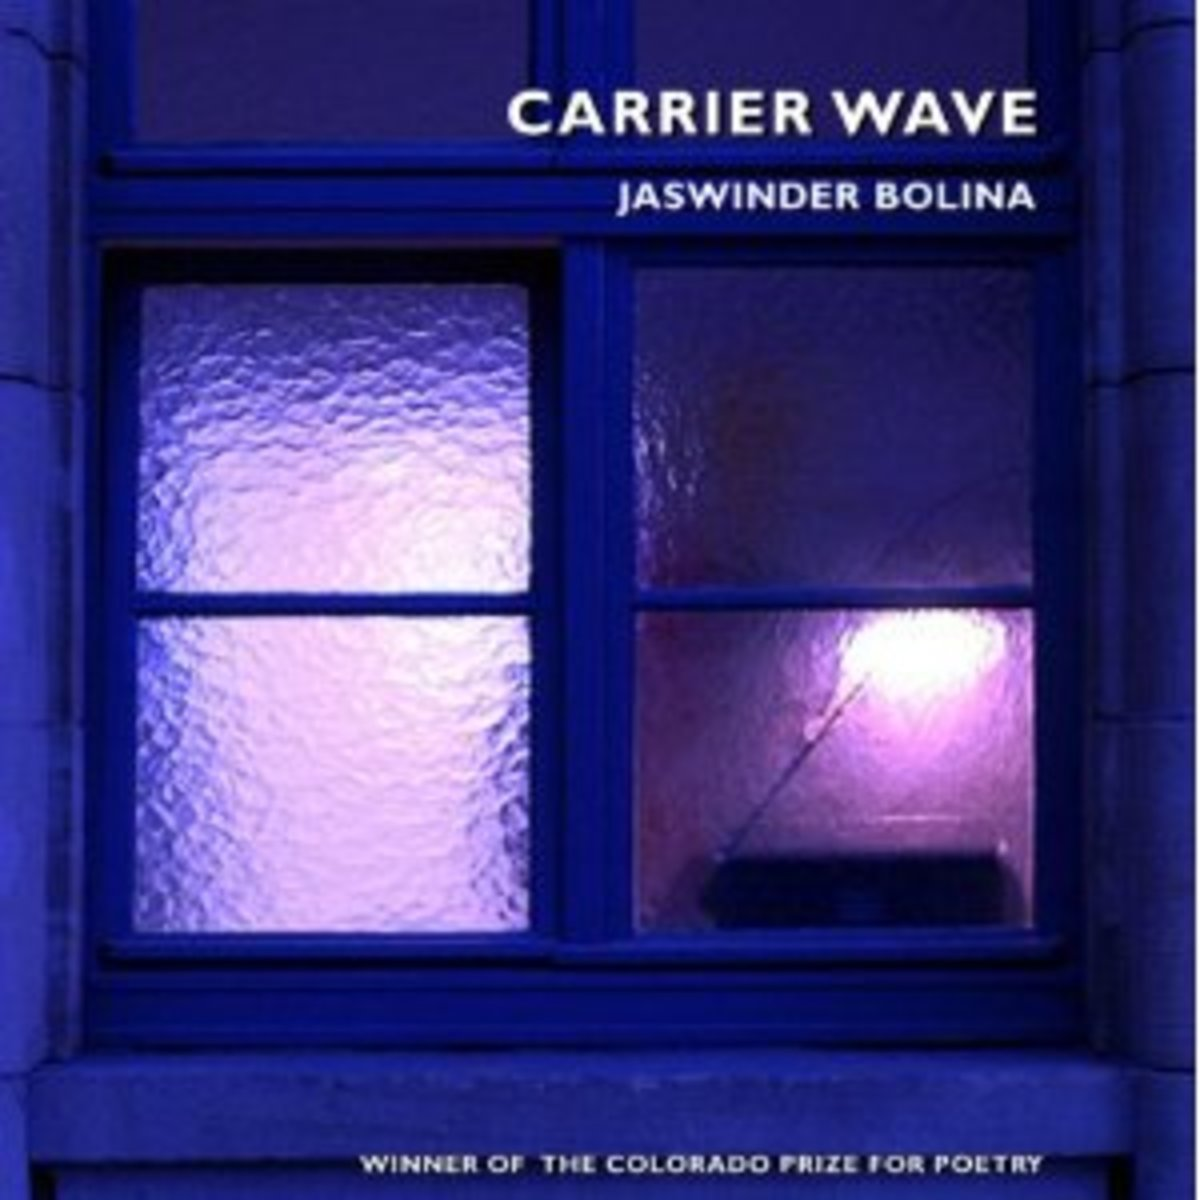 Carrier Wave, by Jaswinder Bolina